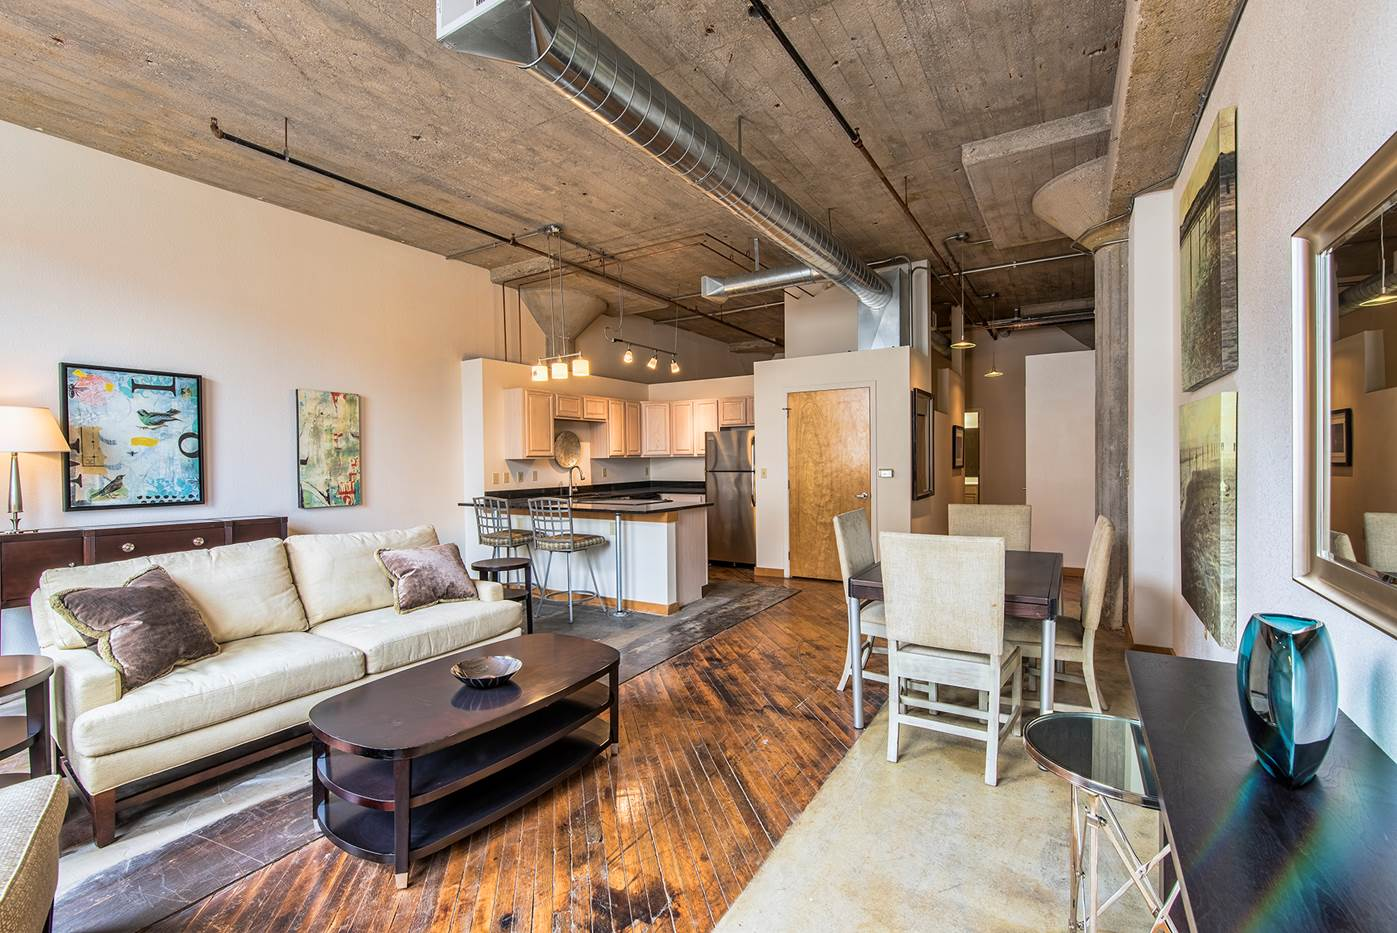 Featured For Sale Freighthouse Lofts 207 Kansas City